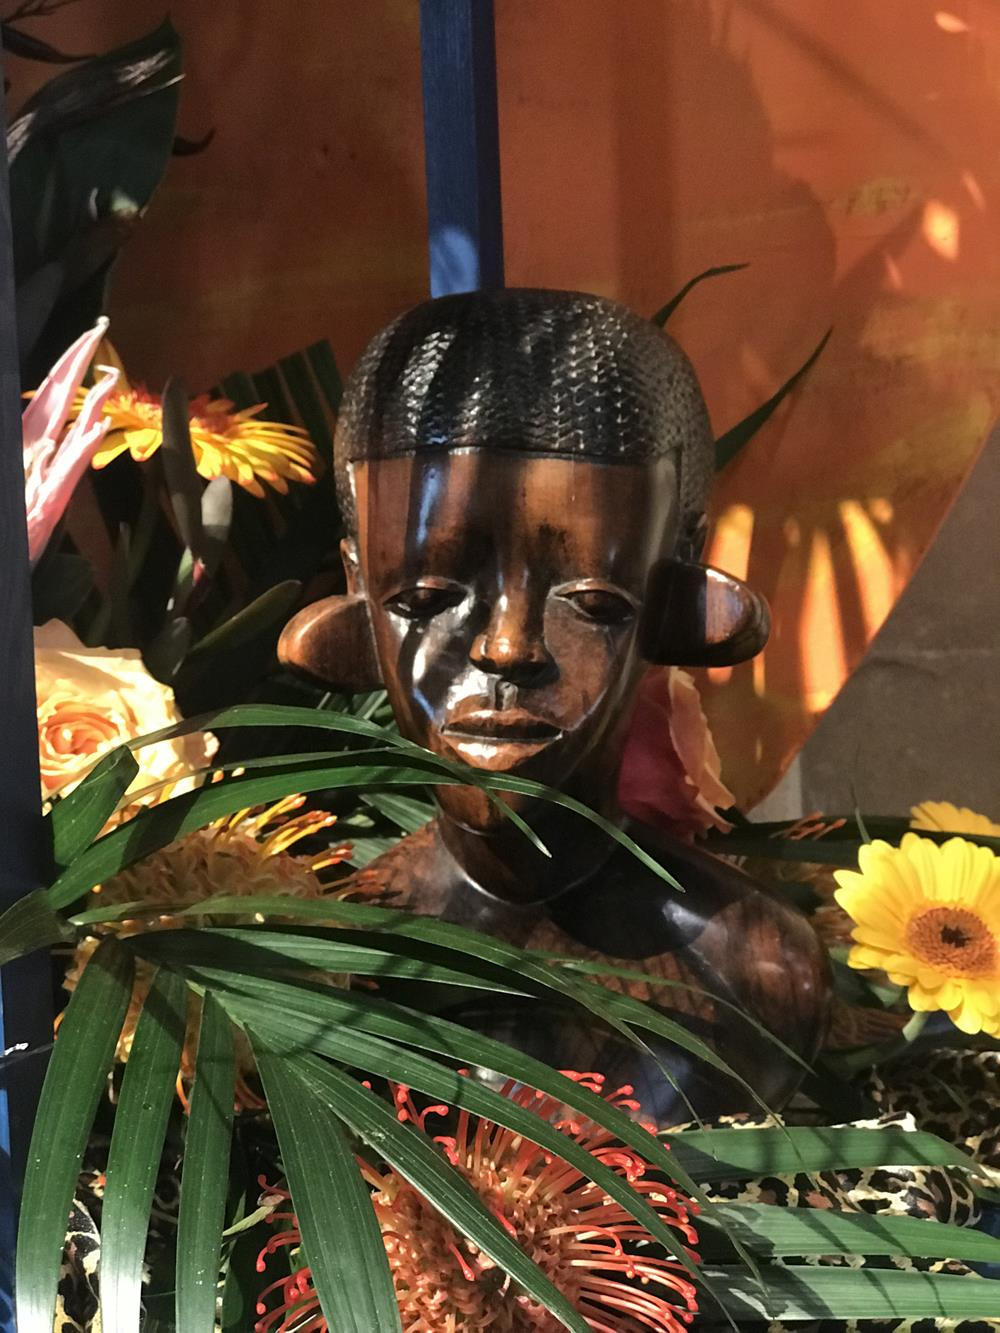 Wooden Africal statue in floral arrangement